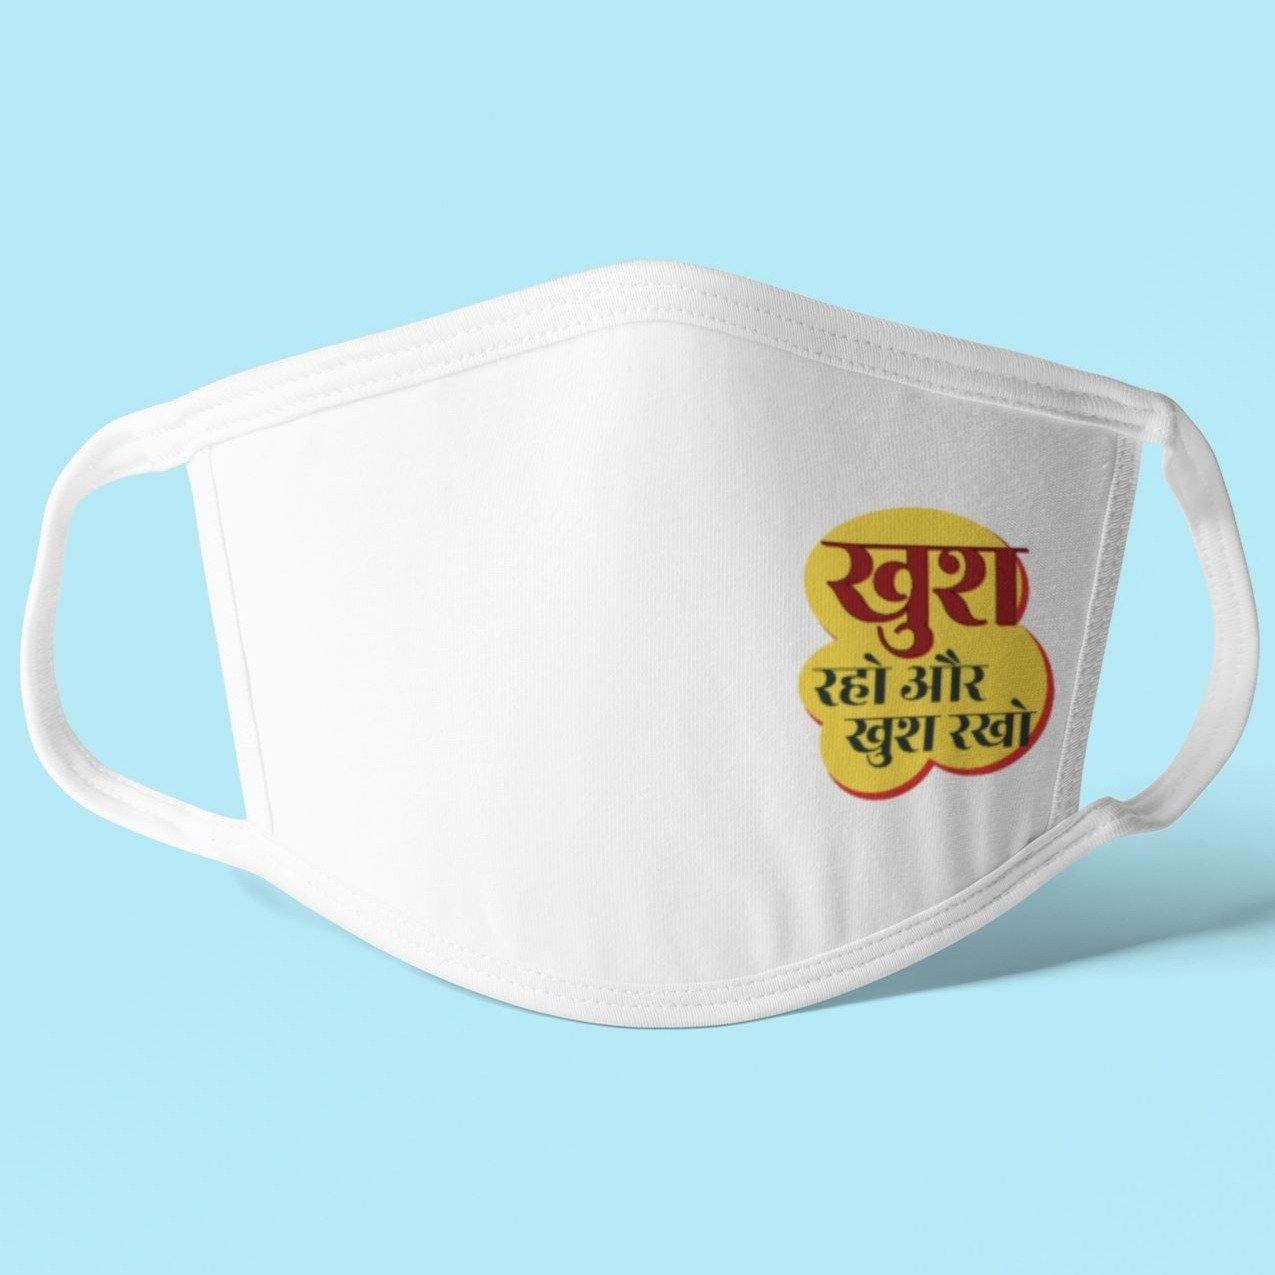 Pack of 3 Masks - Set 5 - Daily Suvichar Store